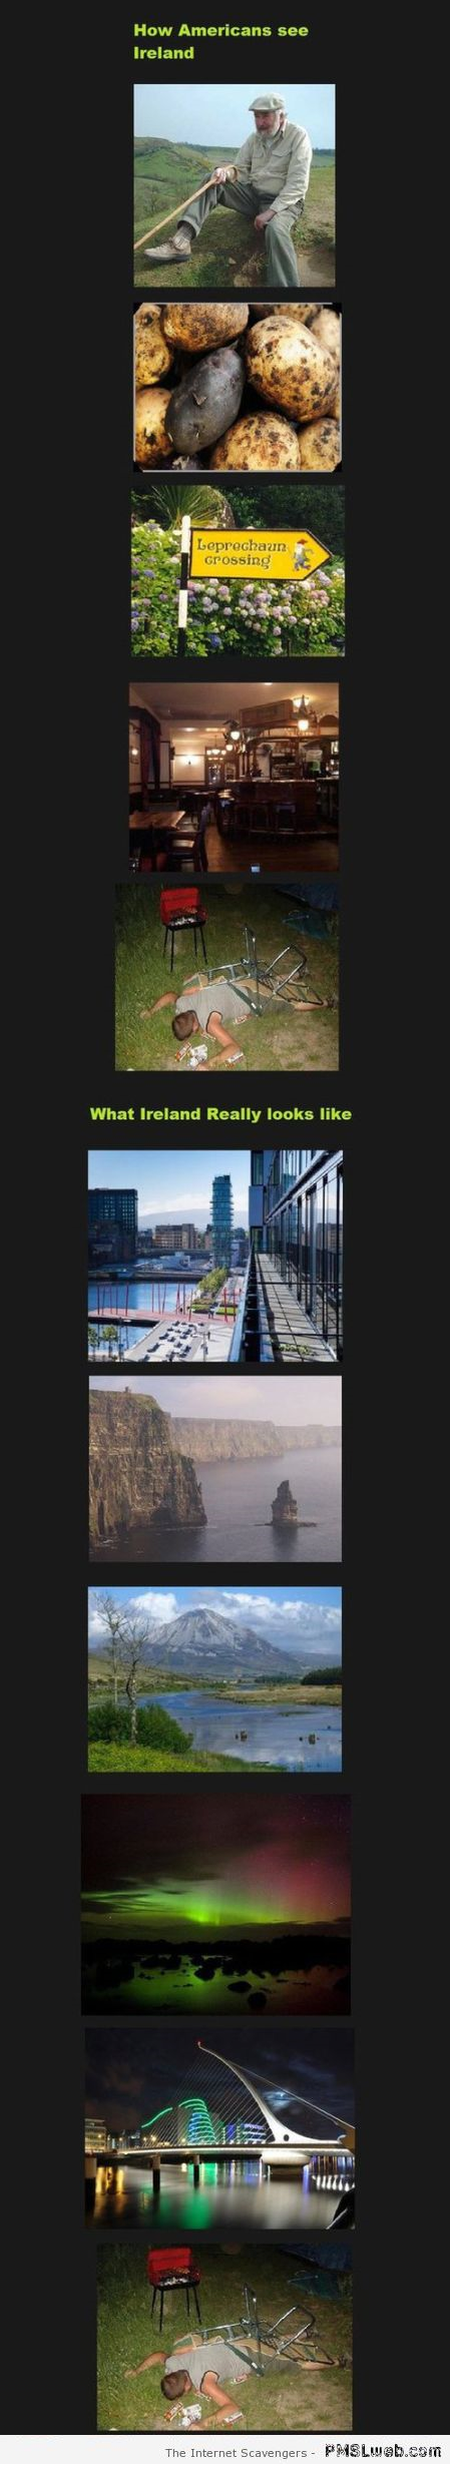 How Americans see Ireland humor at PMSLweb.com